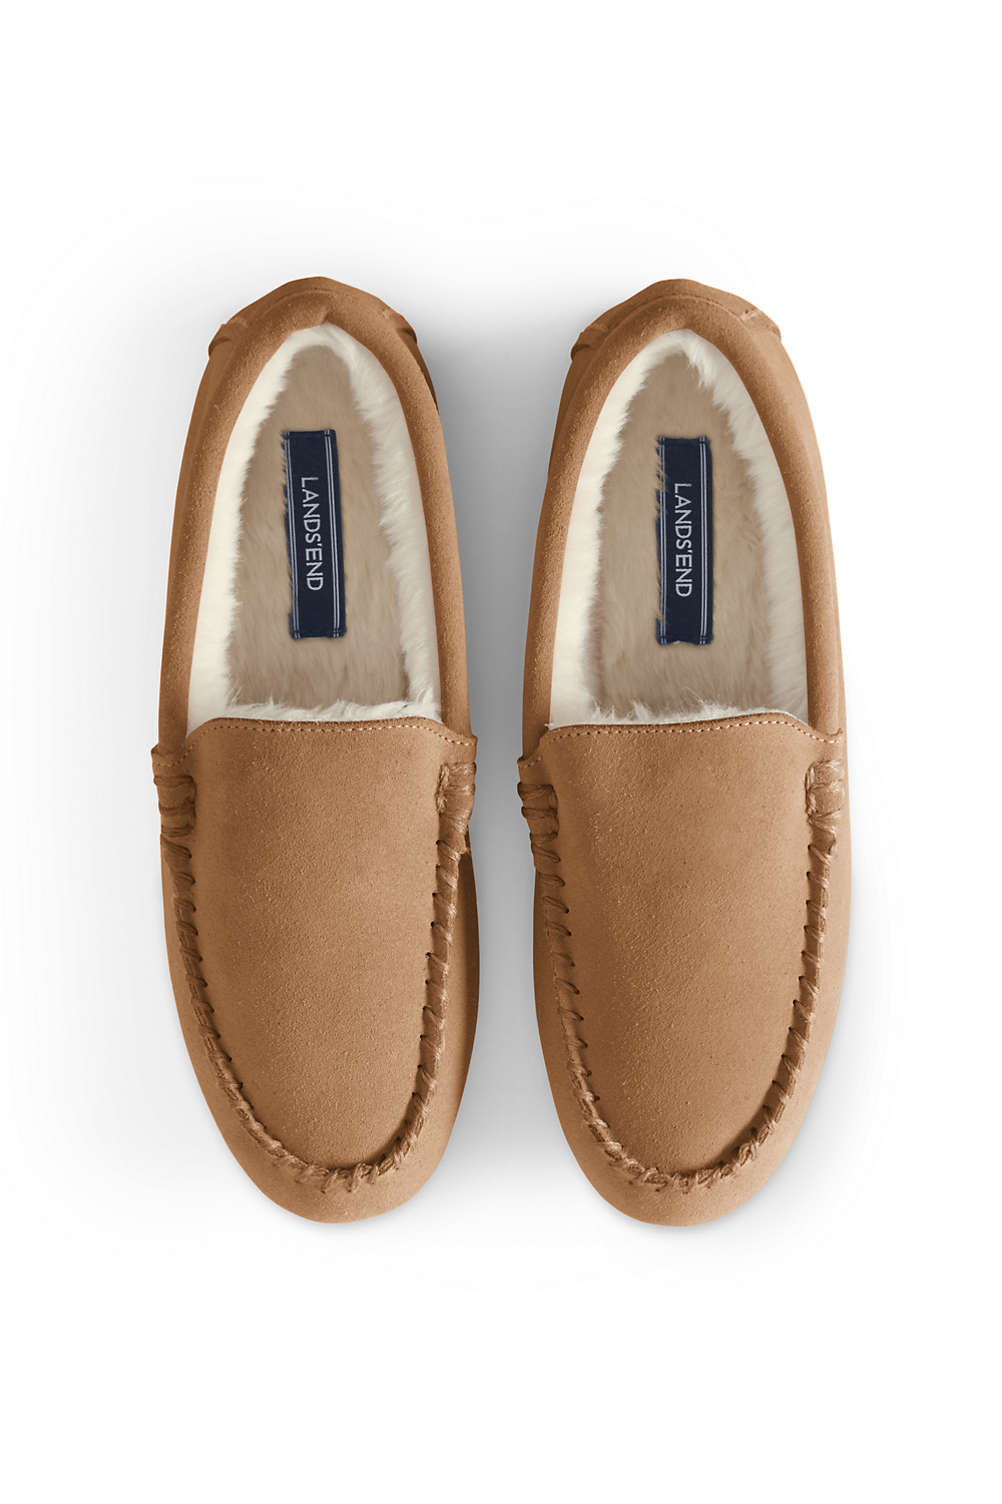 a374750115a8 Women's Suede Moccasin Slippers from Lands' End